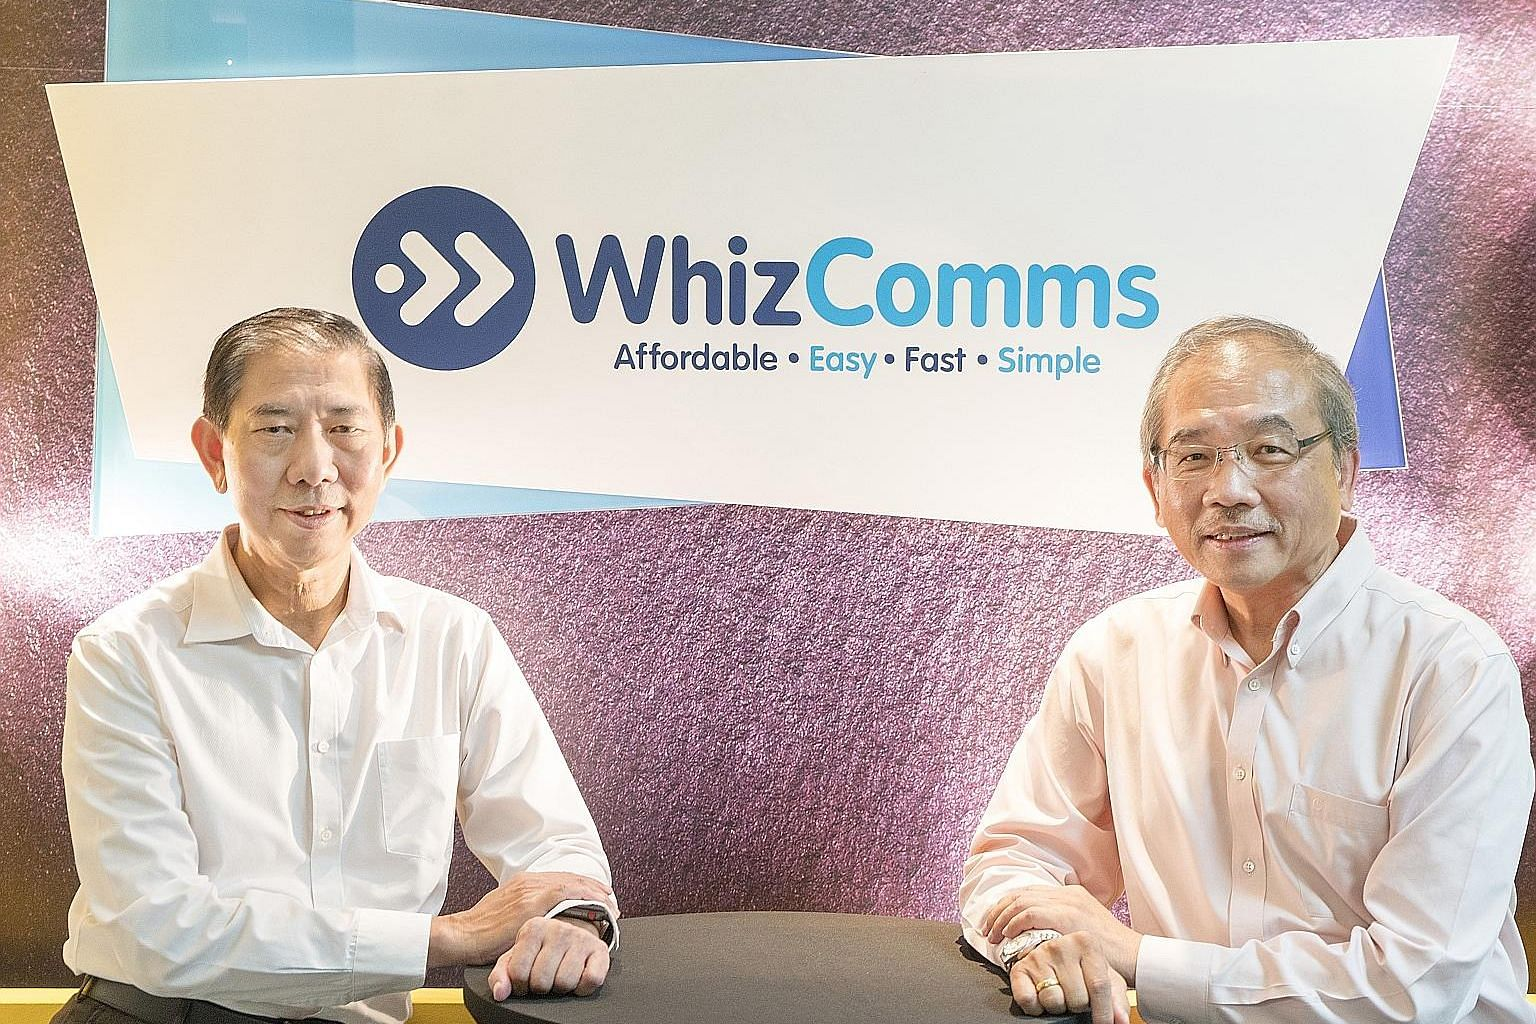 Mr Chiang Chee Cheong (left), managing director of WhizComms, and Mr Jason Kuek, deputy managing director of WhizComms, started the fibre broadband company two years ago.